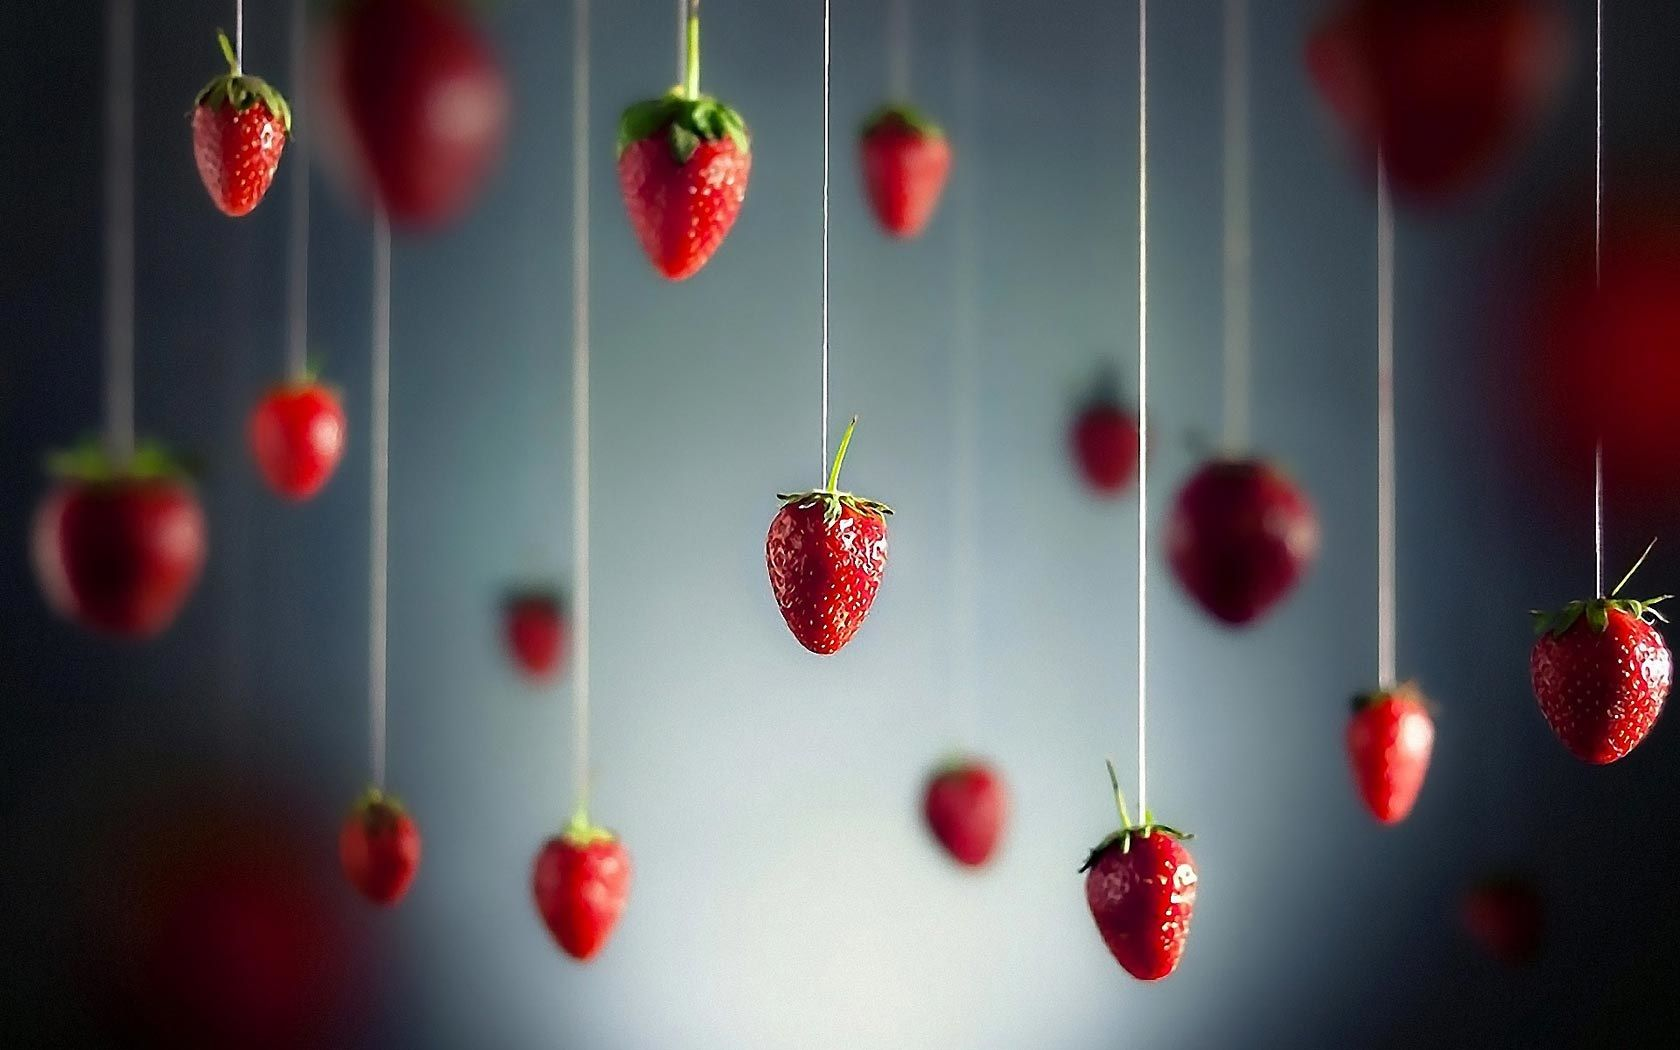 Wallpaper strawberry hd download for windows